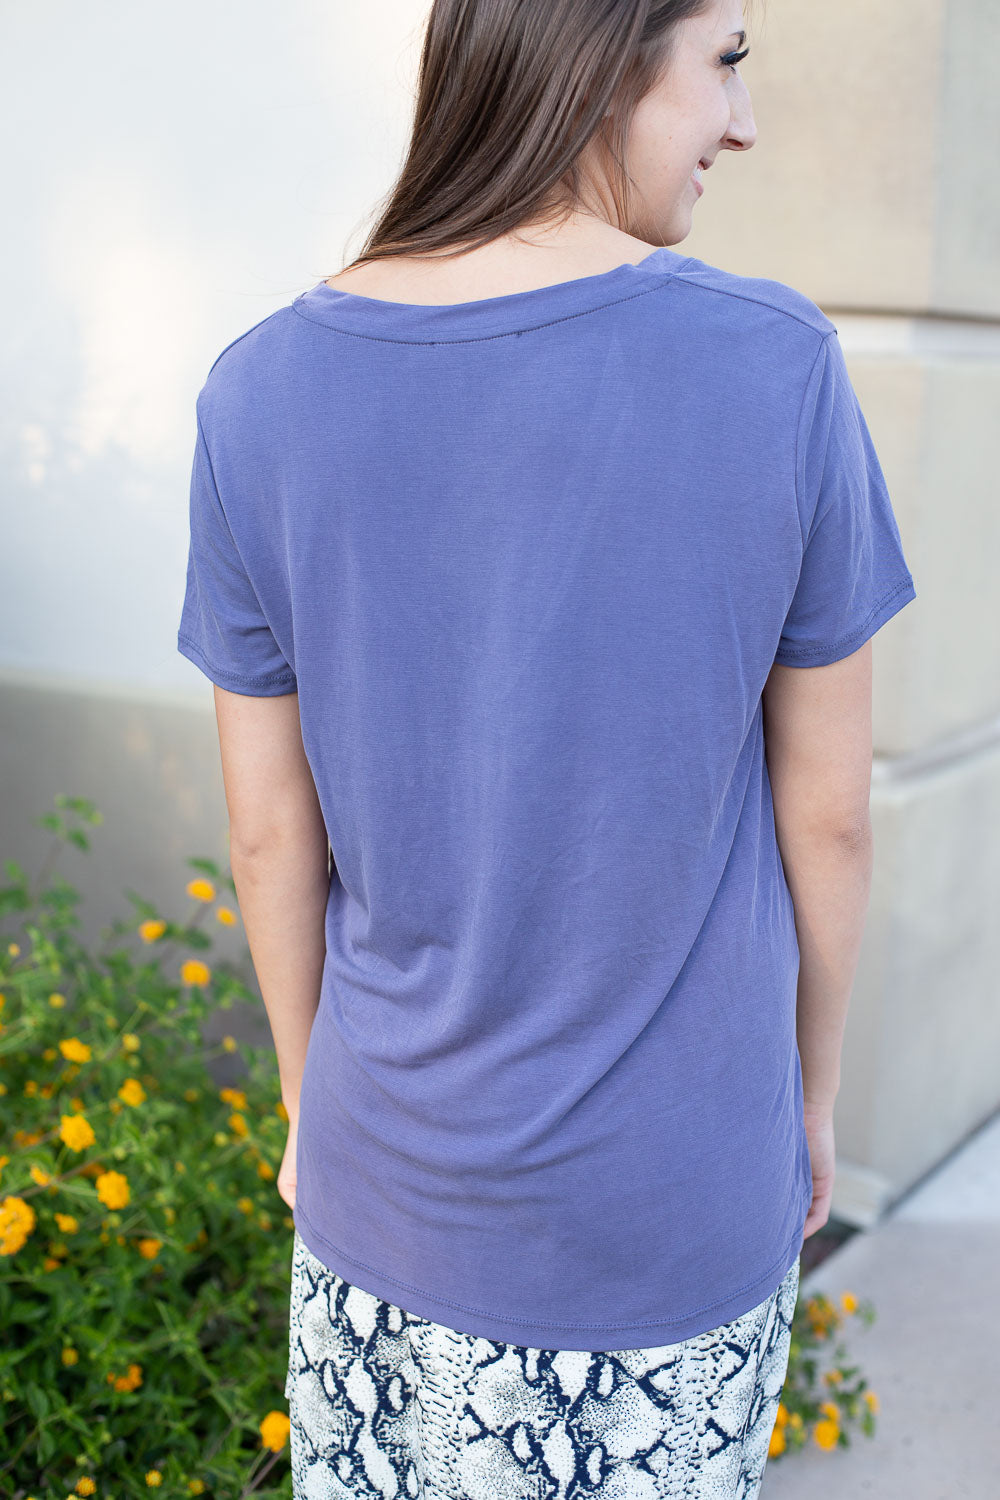 Periwinkle blue T-shirt in silky soft modal fabric with V-neck and side slits